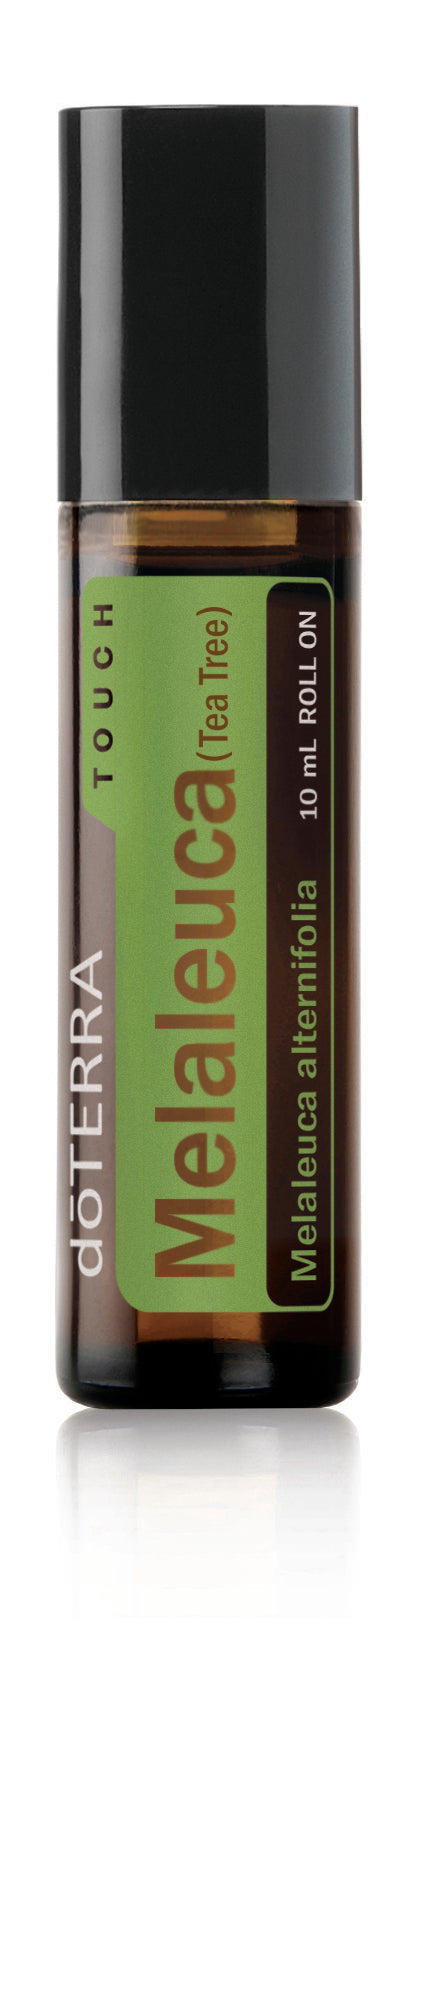 Tea Tree (Melaleuca) Touch Diluted Oil 10ml